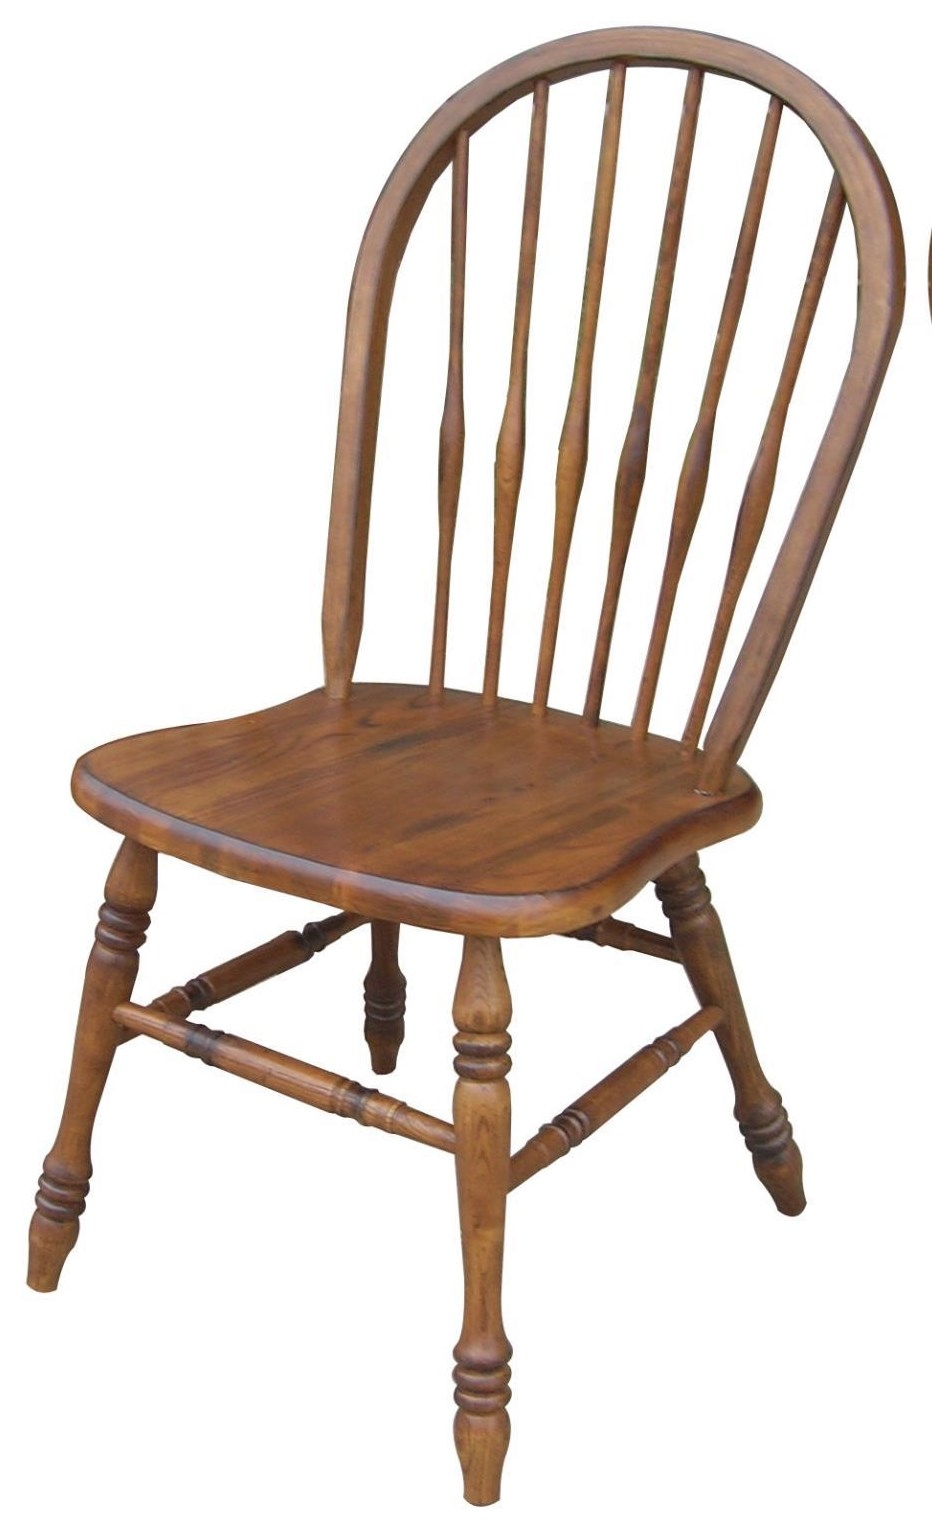 Burnished Walnut Arrowback Chair by Tennessee Enterprises at Westrich Furniture & Appliances